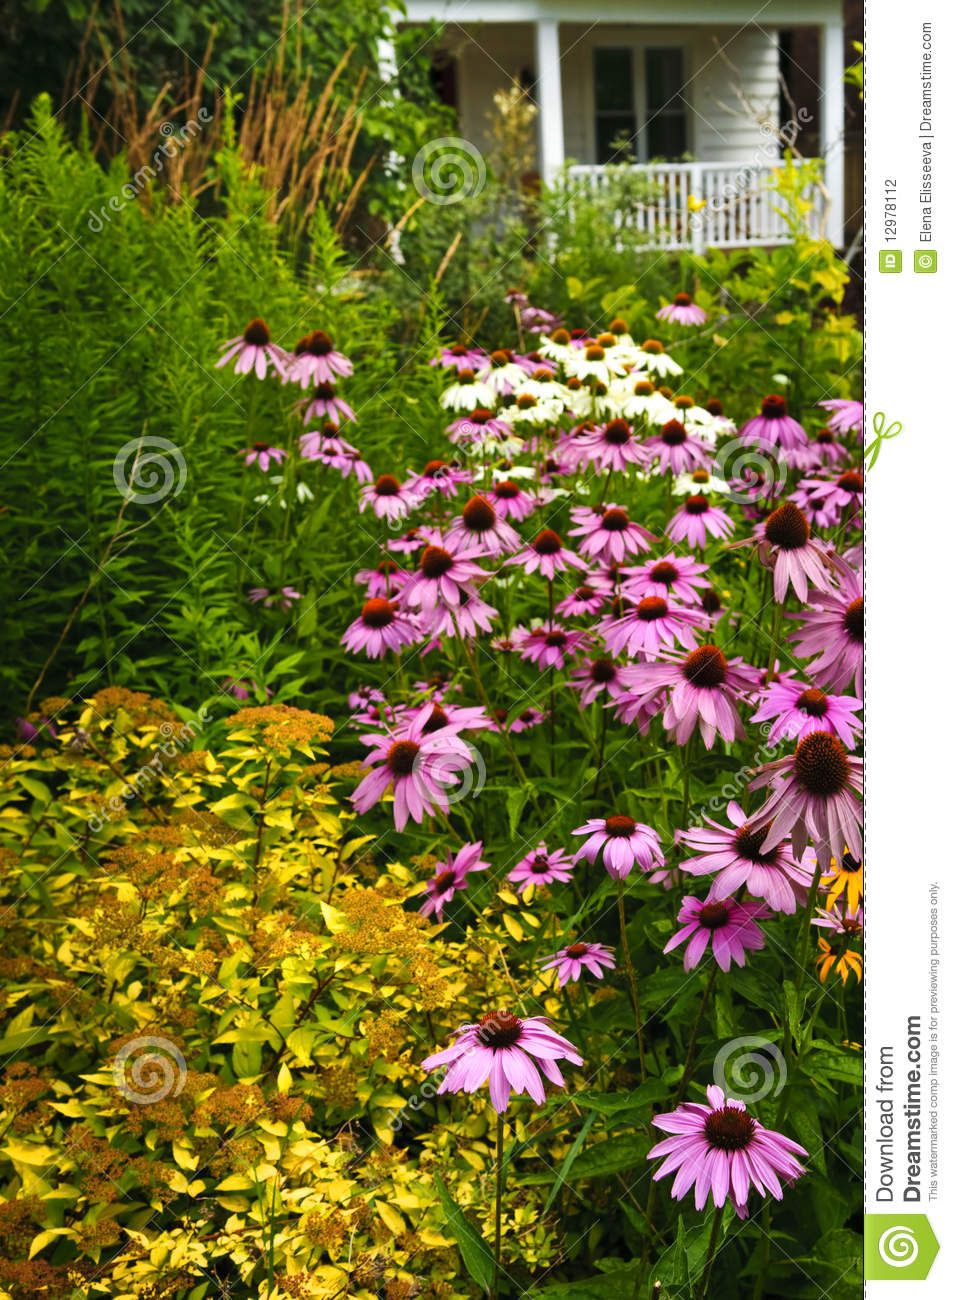 Residential Landscaping Plants : Residential garden landscaping stock photography image